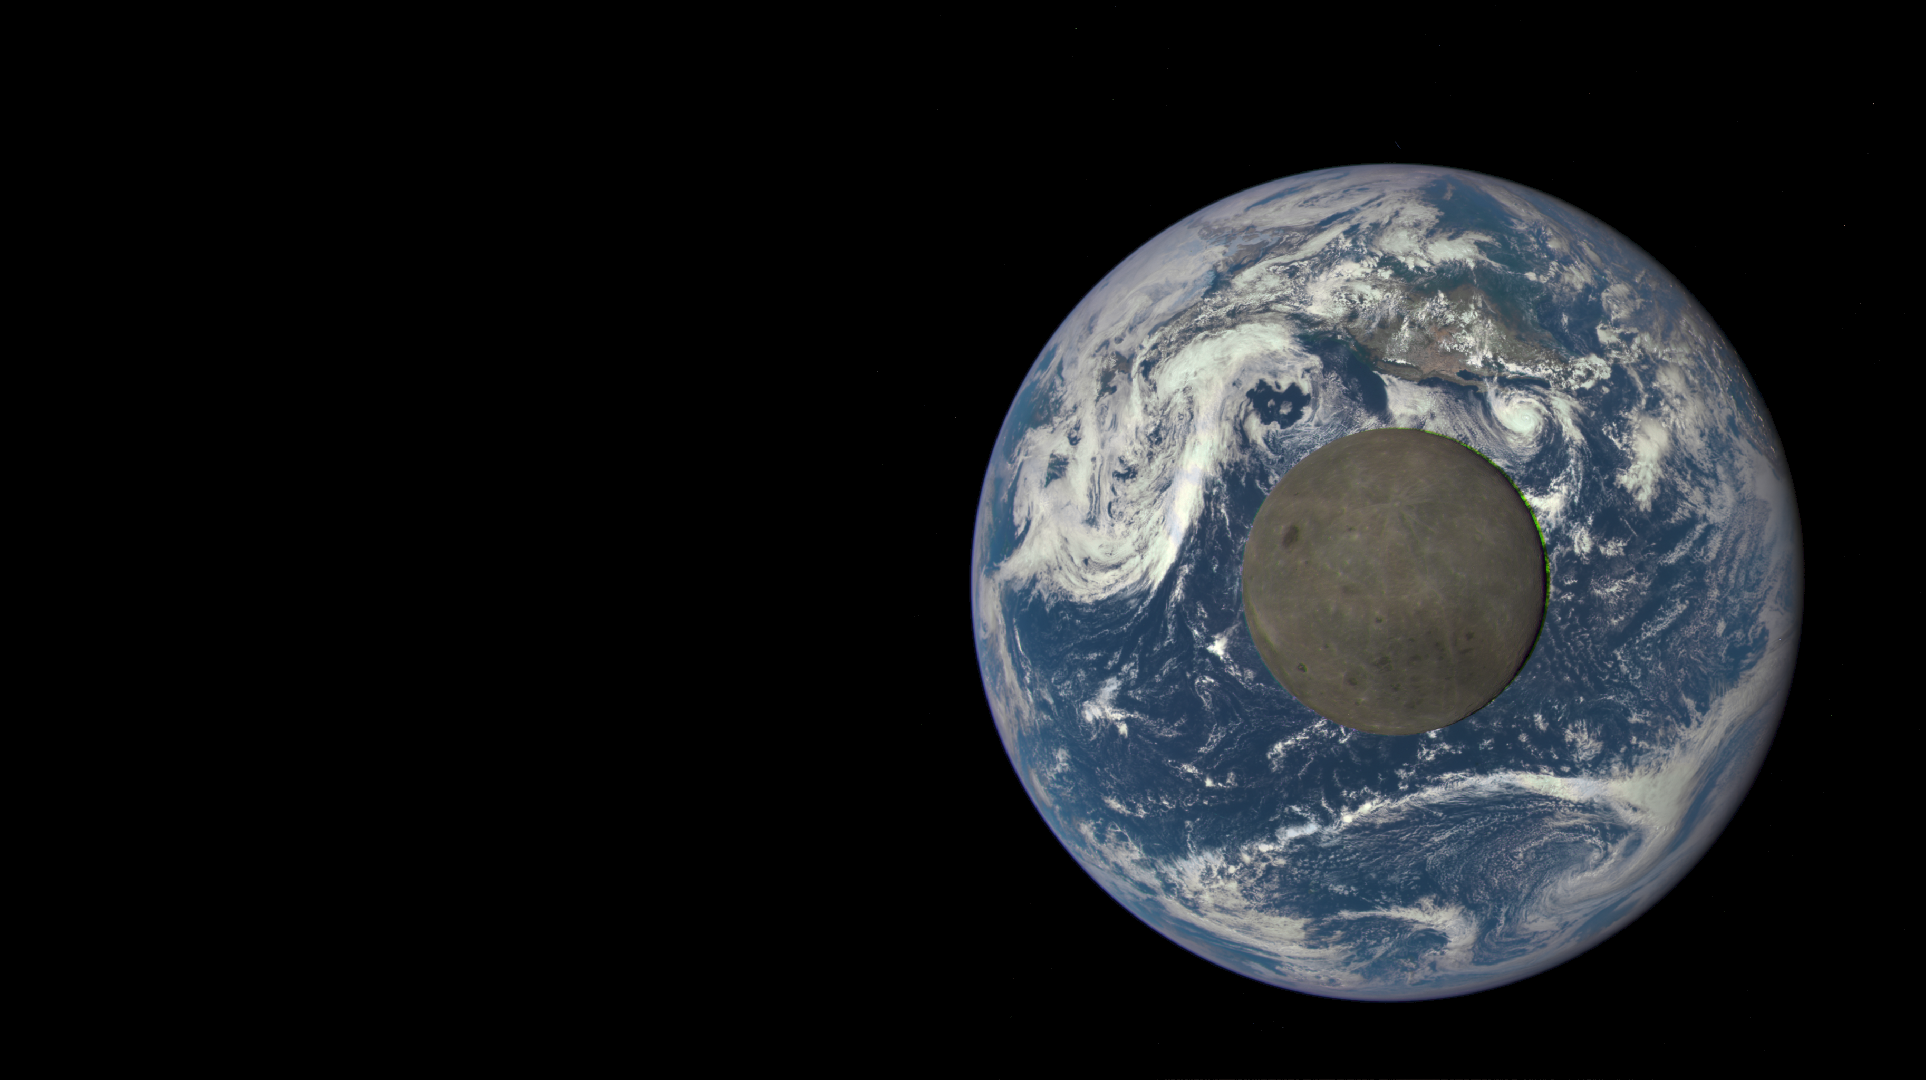 NASA-pic-of-Earth-and-Moon-from-L1-point-1926×1080-wallpaper.png